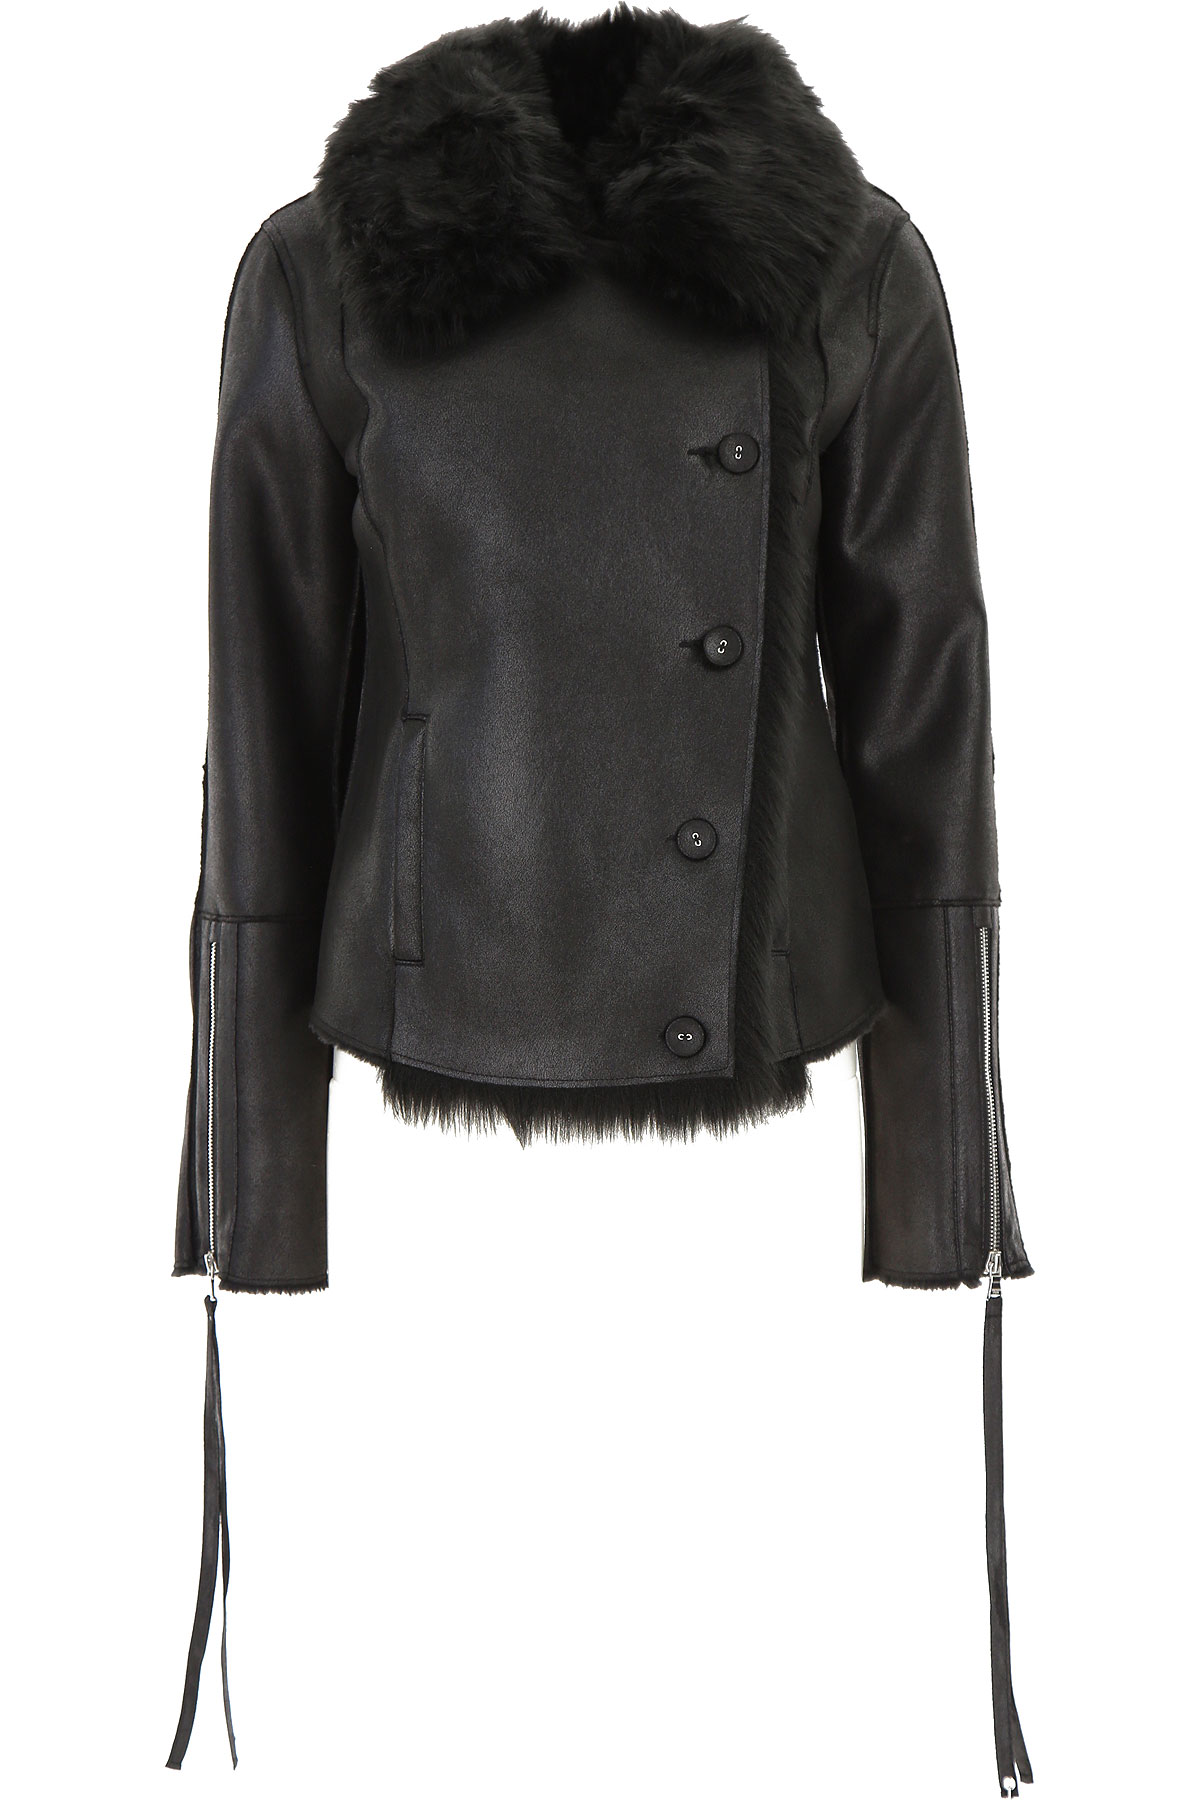 Patrizia Pepe Jacket for Women On Sale, Black, polyester, 2019, 4 8